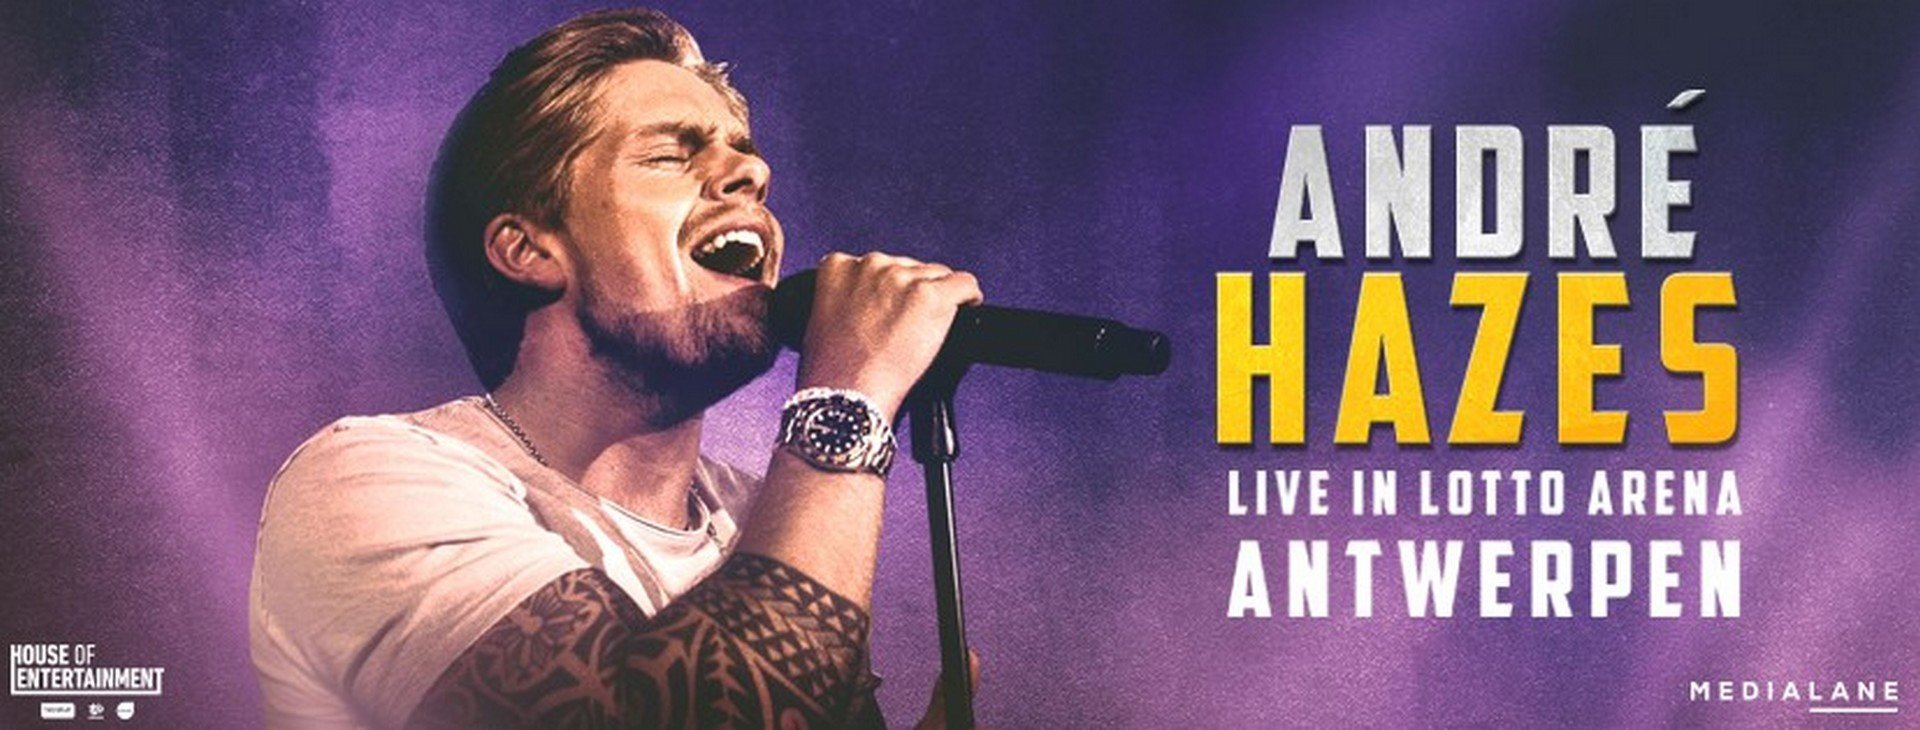 Christoff special guest op Lotto Arena-concert André Hazes! - Andre hazes 1